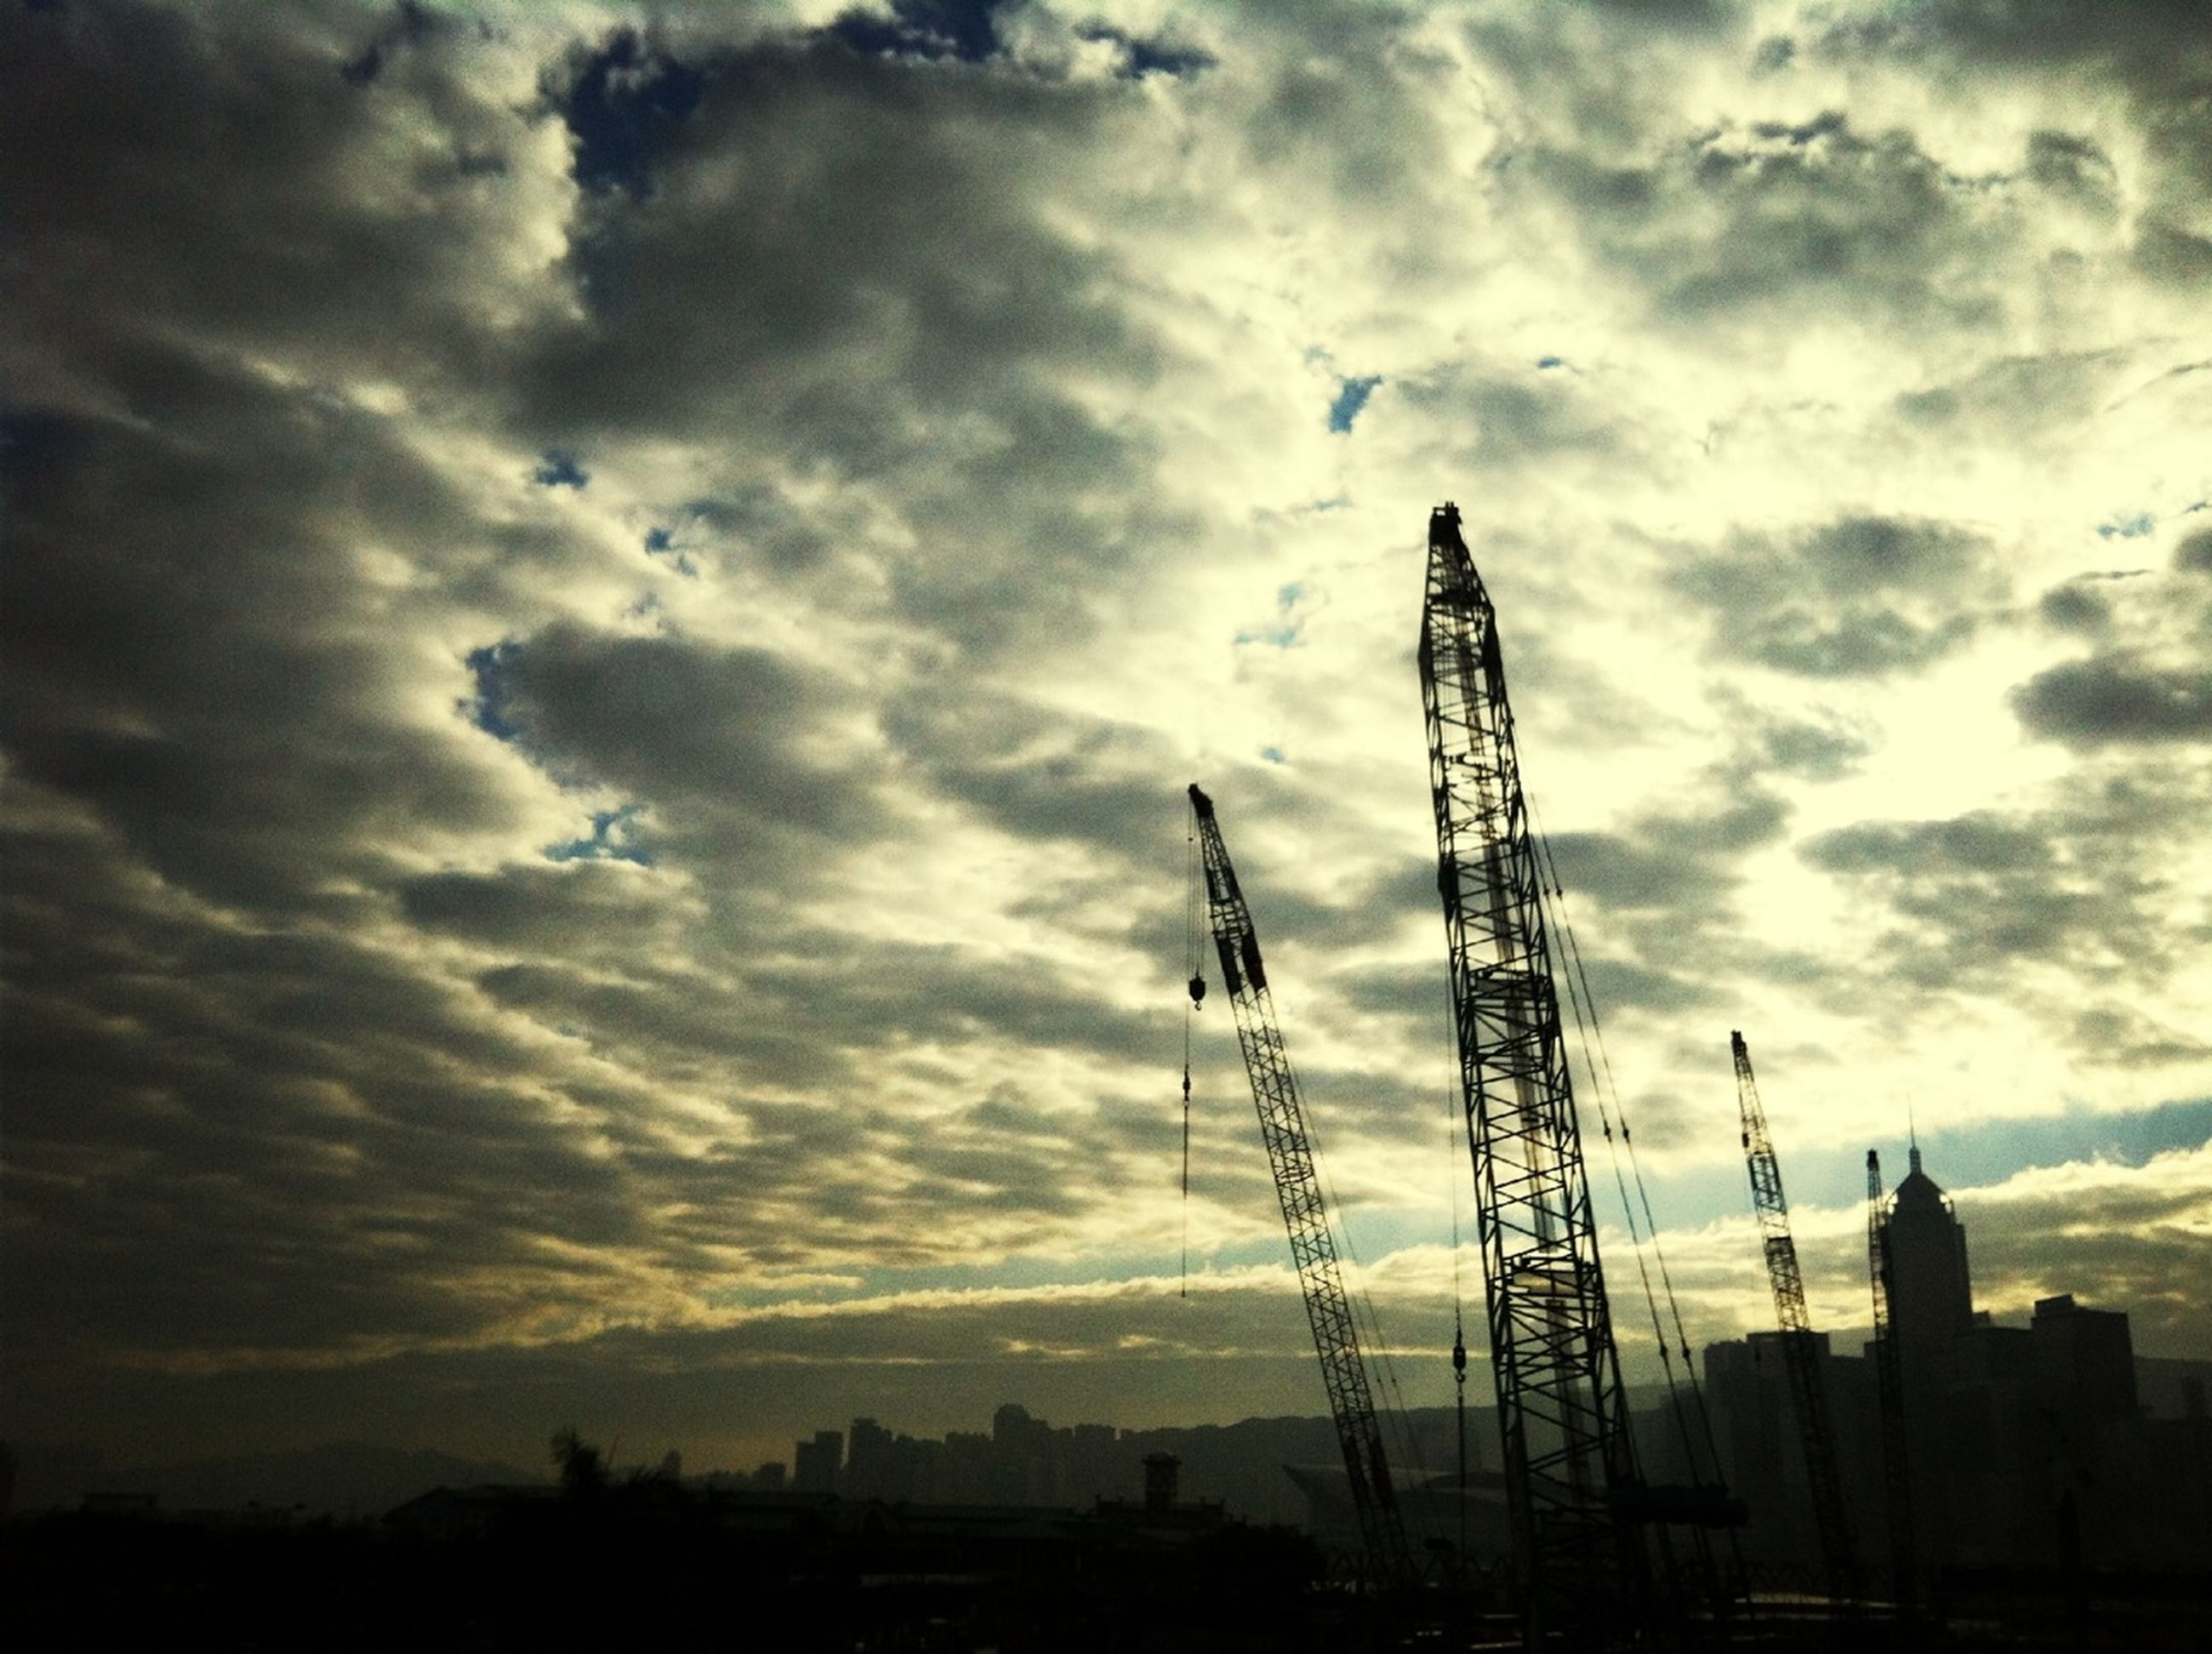 silhouette, sky, sunset, built structure, building exterior, architecture, cloud - sky, low angle view, city, cloudy, cloud, crane - construction machinery, dusk, outdoors, crane, no people, construction site, nature, tall - high, connection